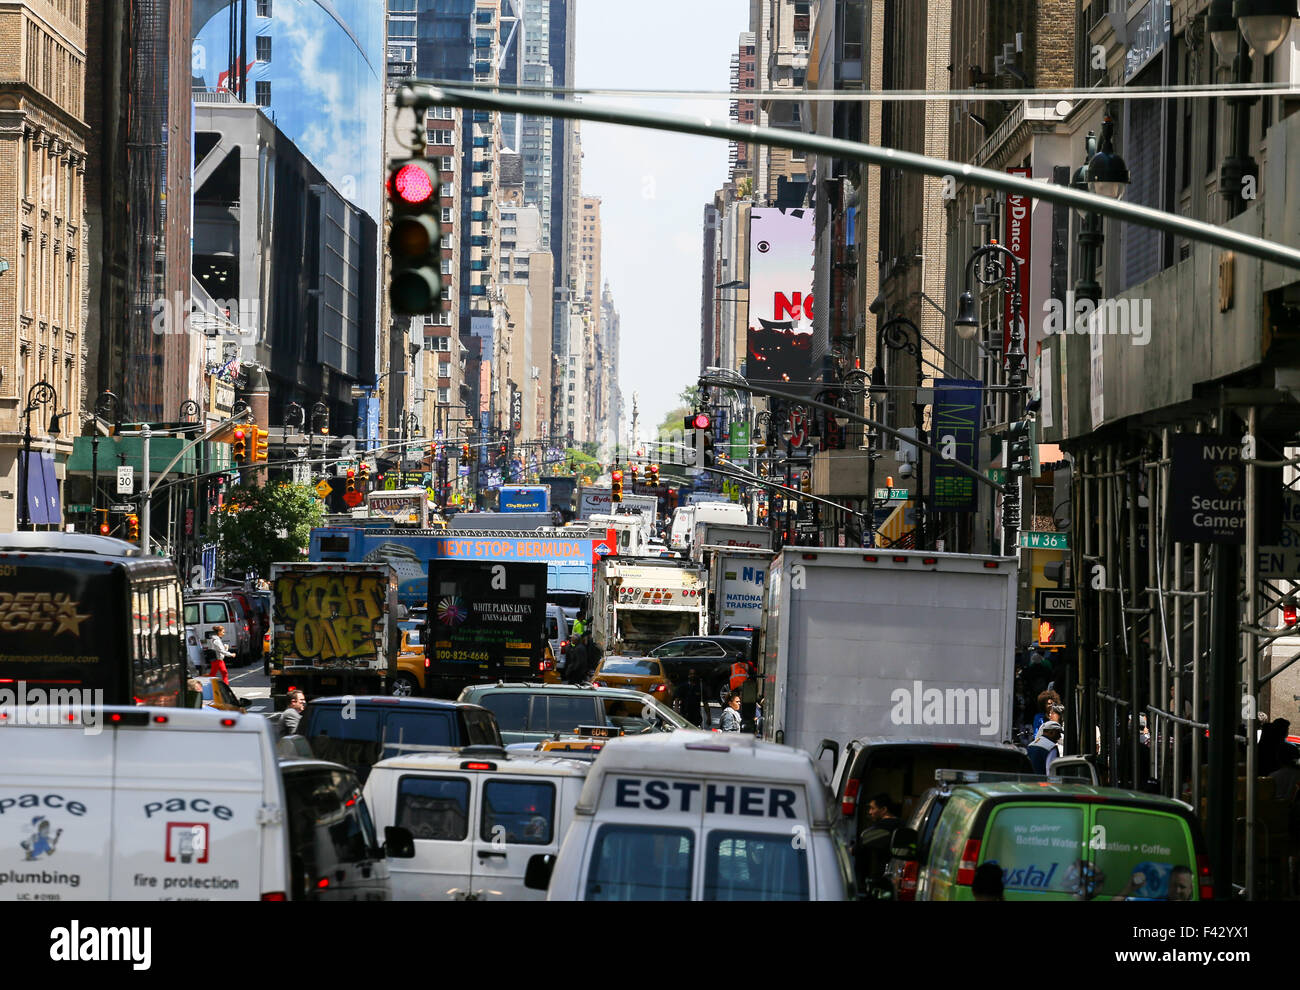 Streets of New York - Stock Image